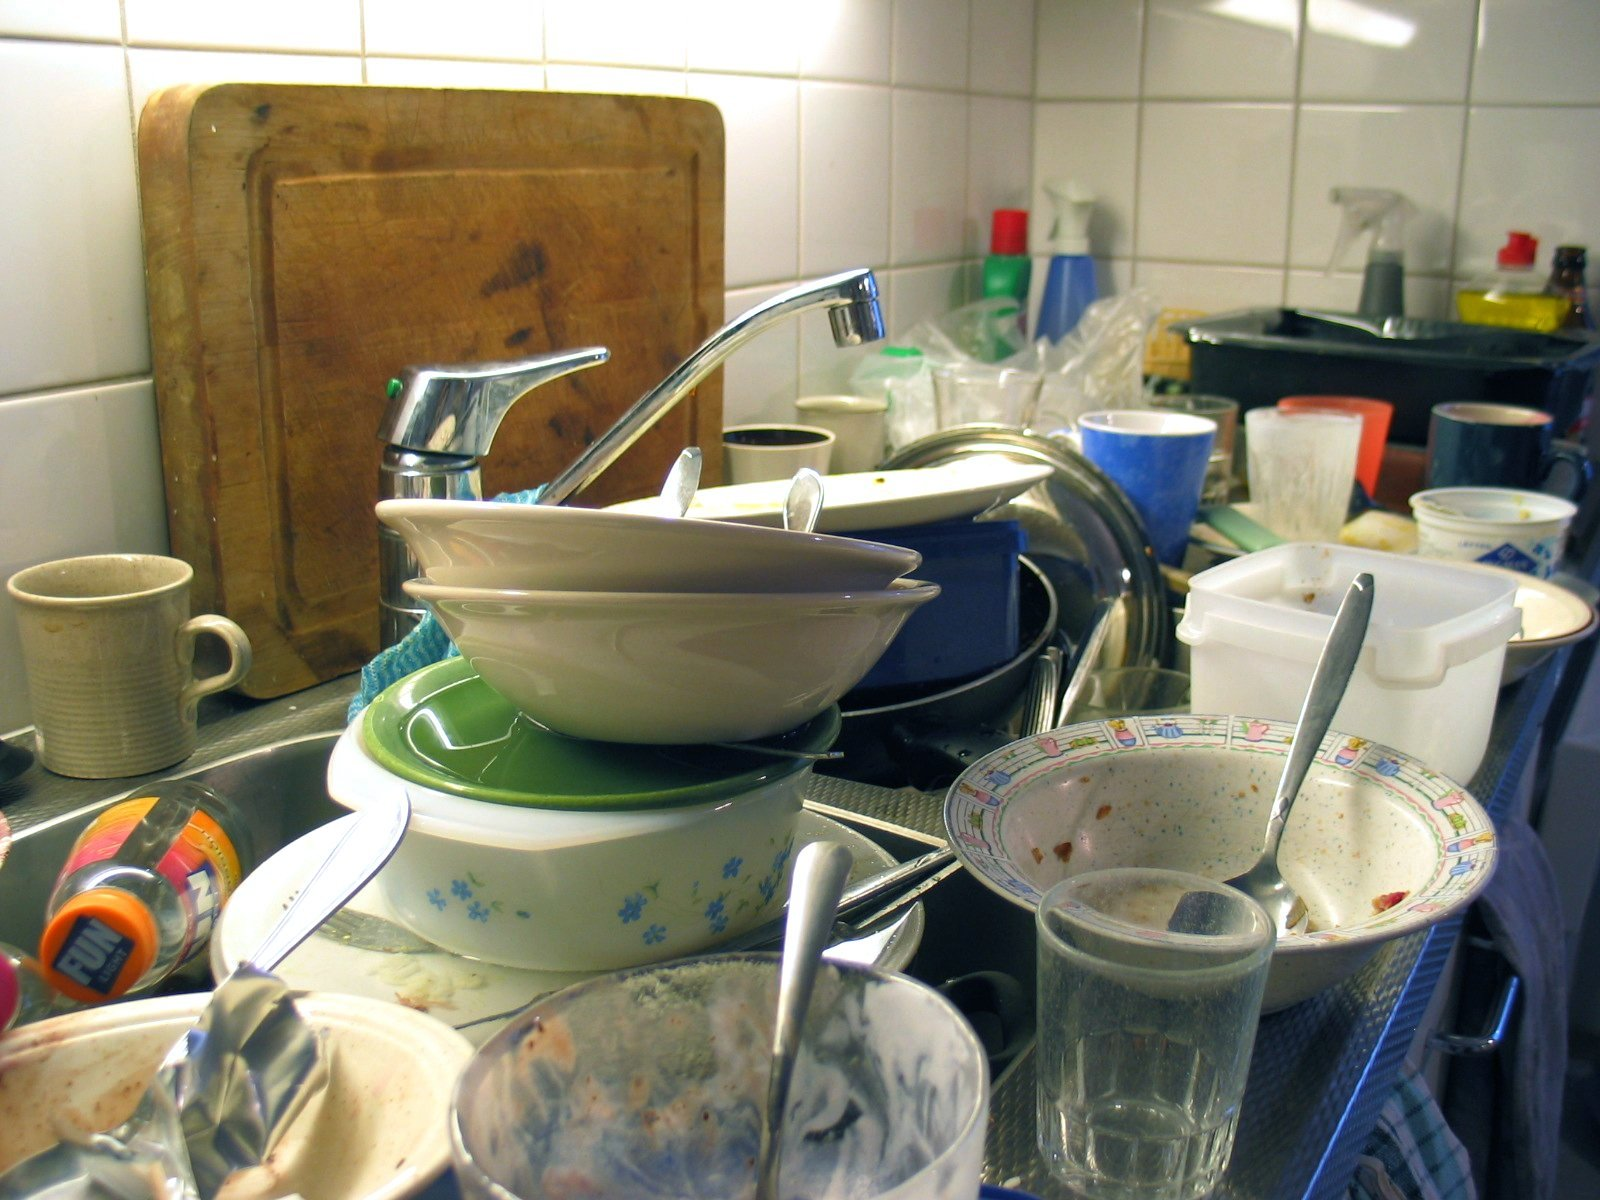 The Dirty Kitchen Apocalypse Theory – A Generous Helping